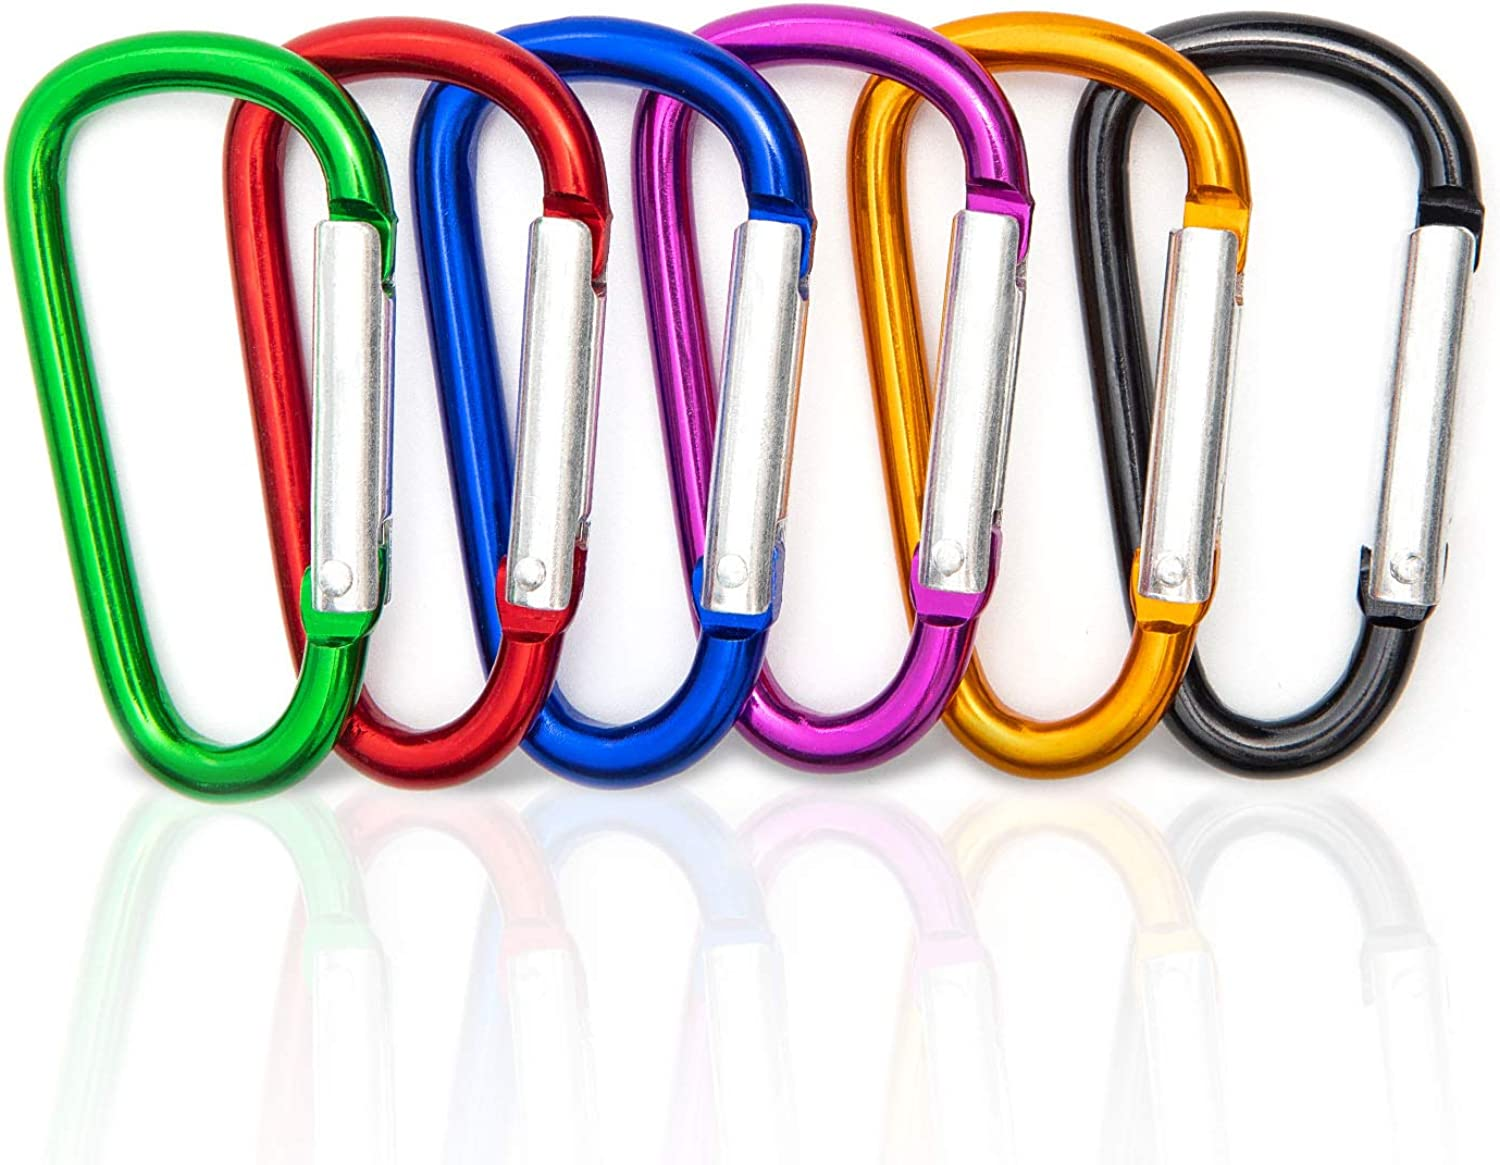 6 Pcs Carabiner Clip, Shellvcase Aluminum Keychain Clip, 2.4'' D-Ring Small Carabiner Keychain Belt Clip, Buckle Pack Spring Snap Hook for Outdoor Home RV Camping Fishing Hiking Traveling Backpack